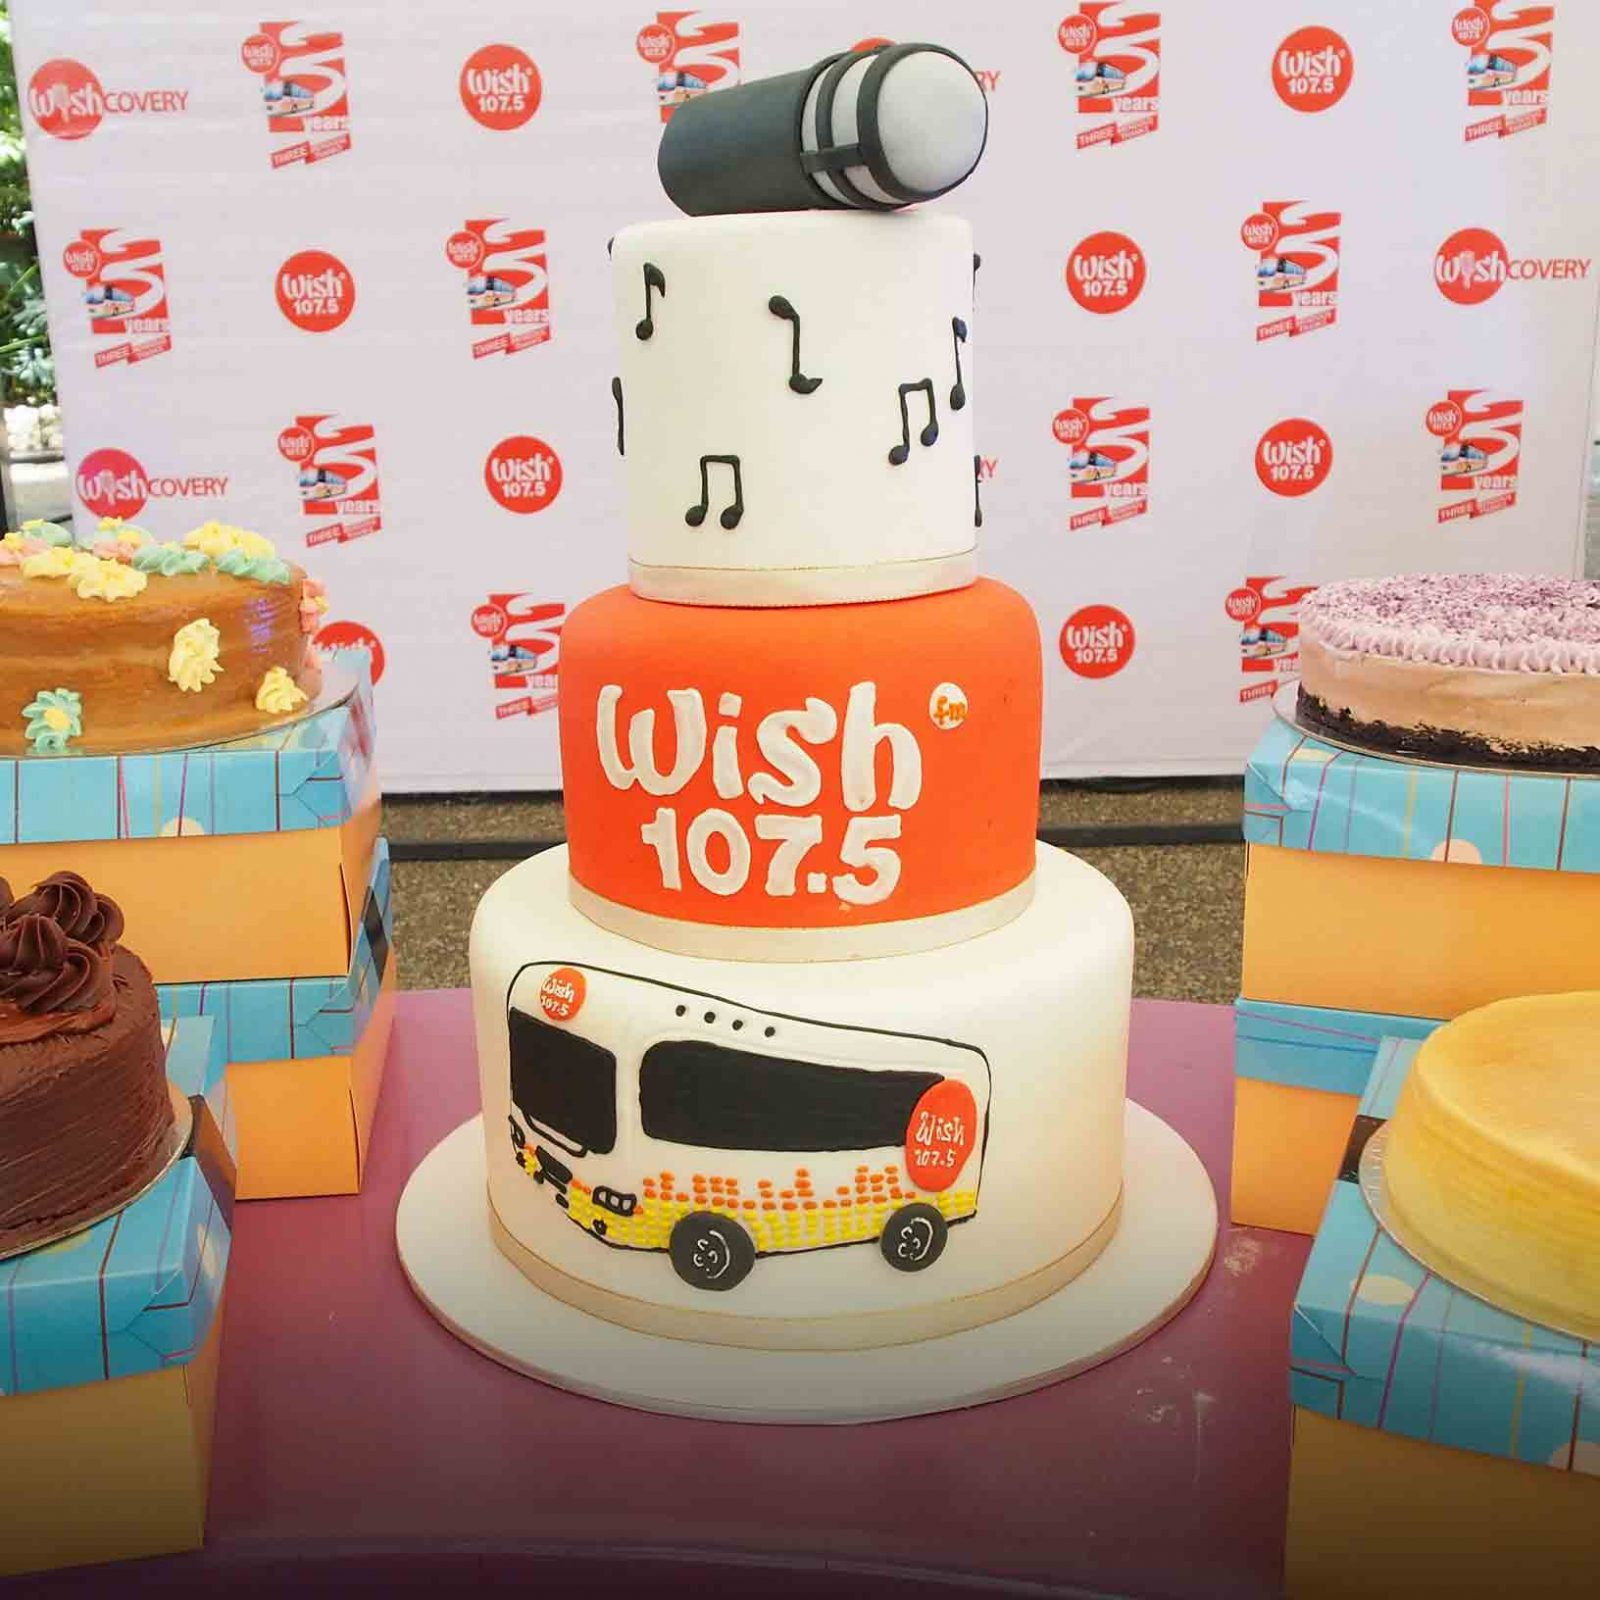 Wish 107.5 turned a rainy Thursday to a highly exciting, energy-driven one and gave a 12-hour non-stop musical treat to all the Wishers who participated in the THREEmendous Thanks Party — Wish 107.5's third-year anniversary bash last August 31, 2017 at the Eastwood Central Plaza.   The much-awaited anniversary party started at 9 AM and wrapped up a little after 9 PM. With a star-studded array of homegrown acts, the free anniversary bash was a complete musical extravaganza!   Check out some happy snapshots of Wish 107.5's THREEmendous Thanks party!   (Photo courtesy of Photoville International)